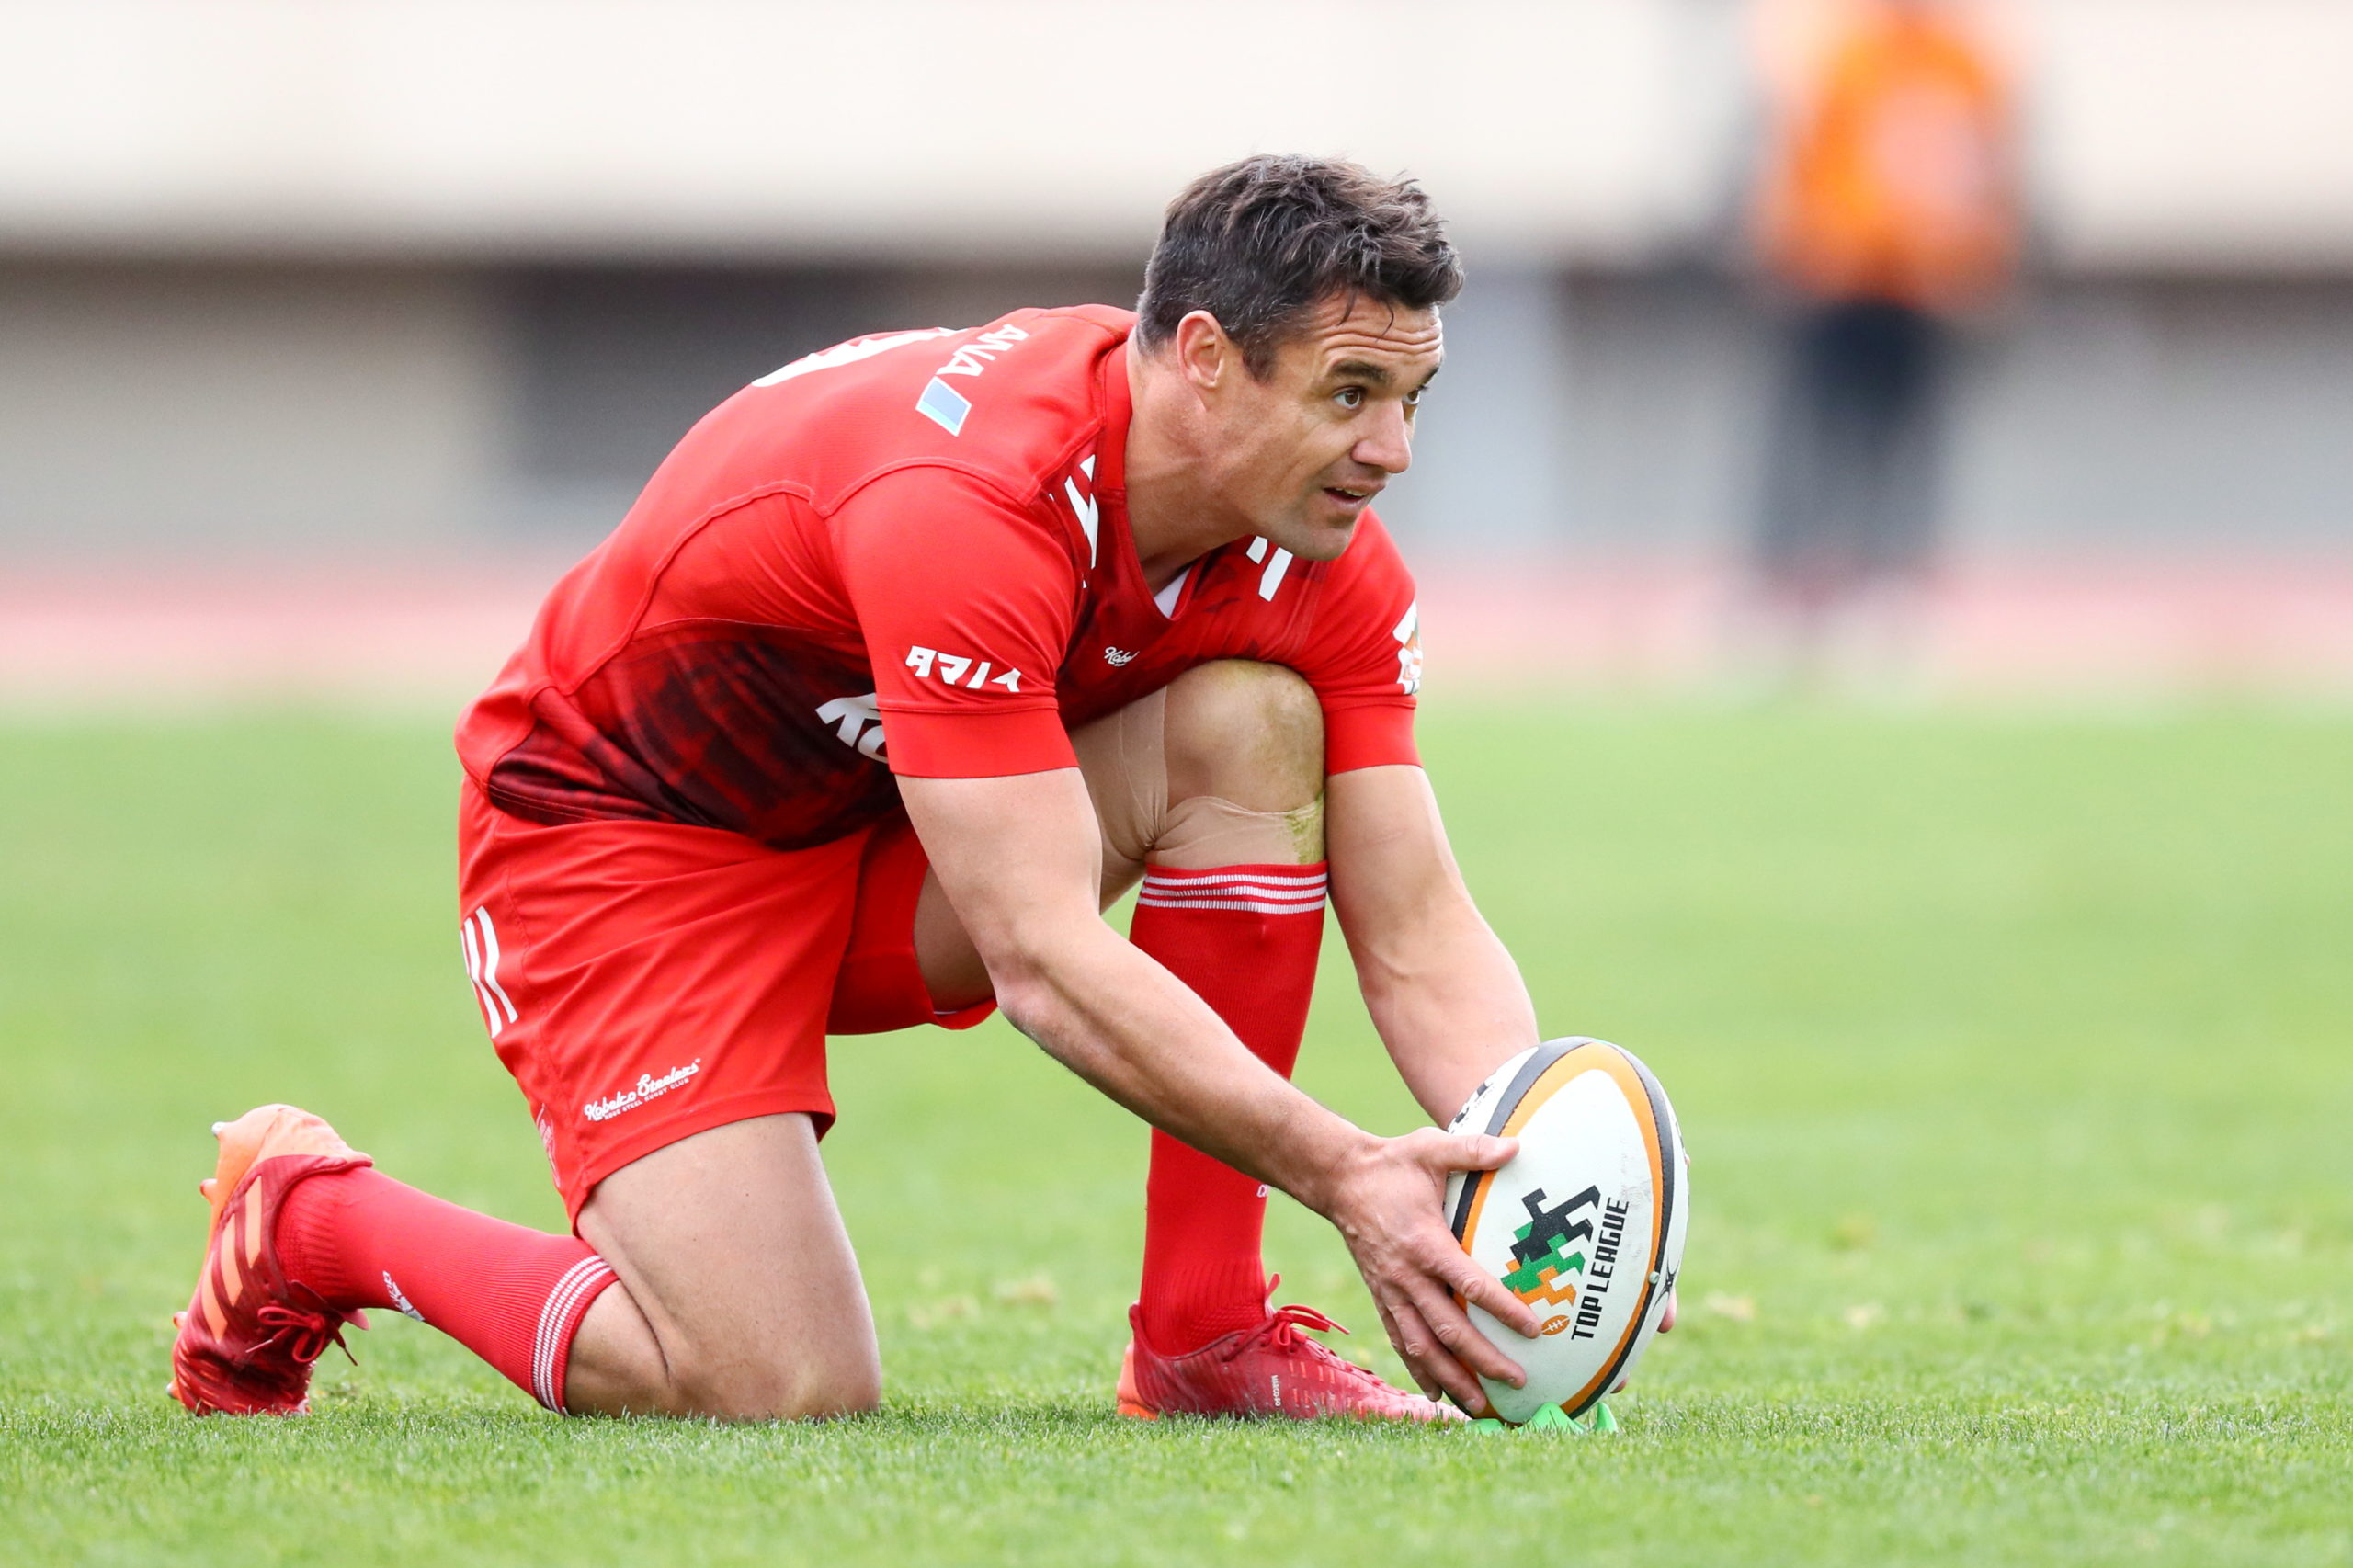 Dan Carter is set to return to New Zealand in their post-COVID-19 Super Rugby event.